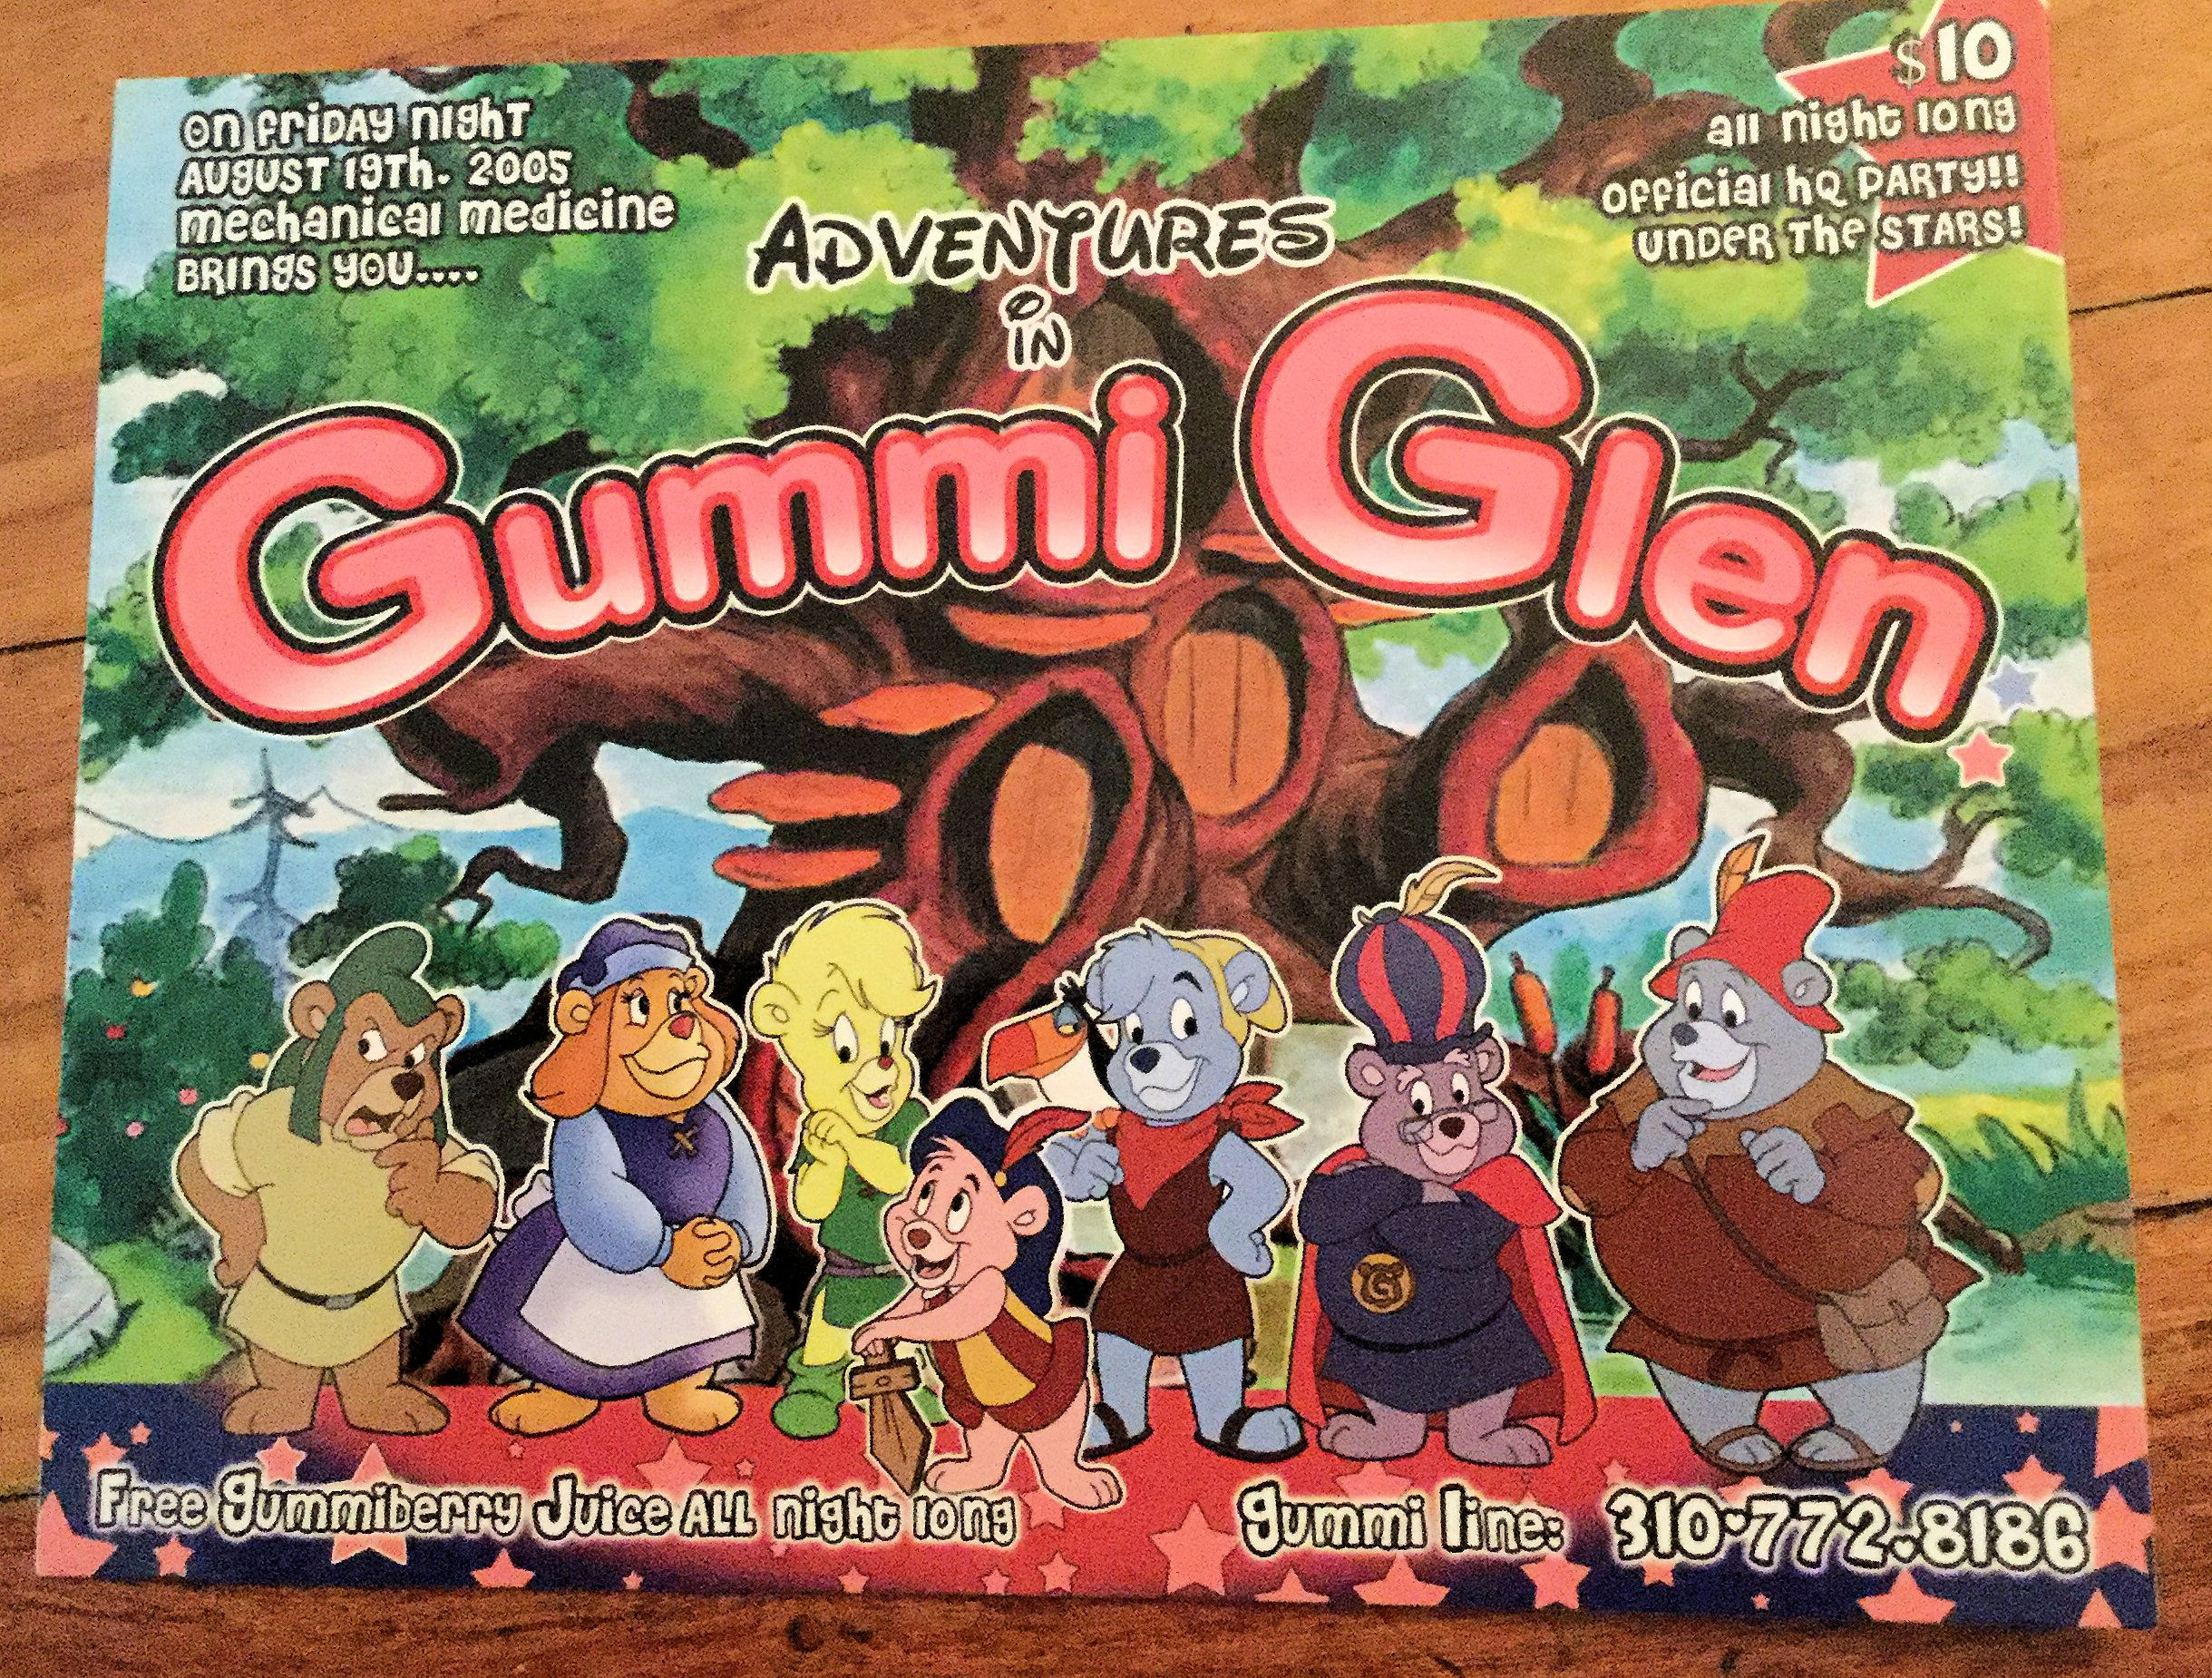 Adventures in Gummi Glen